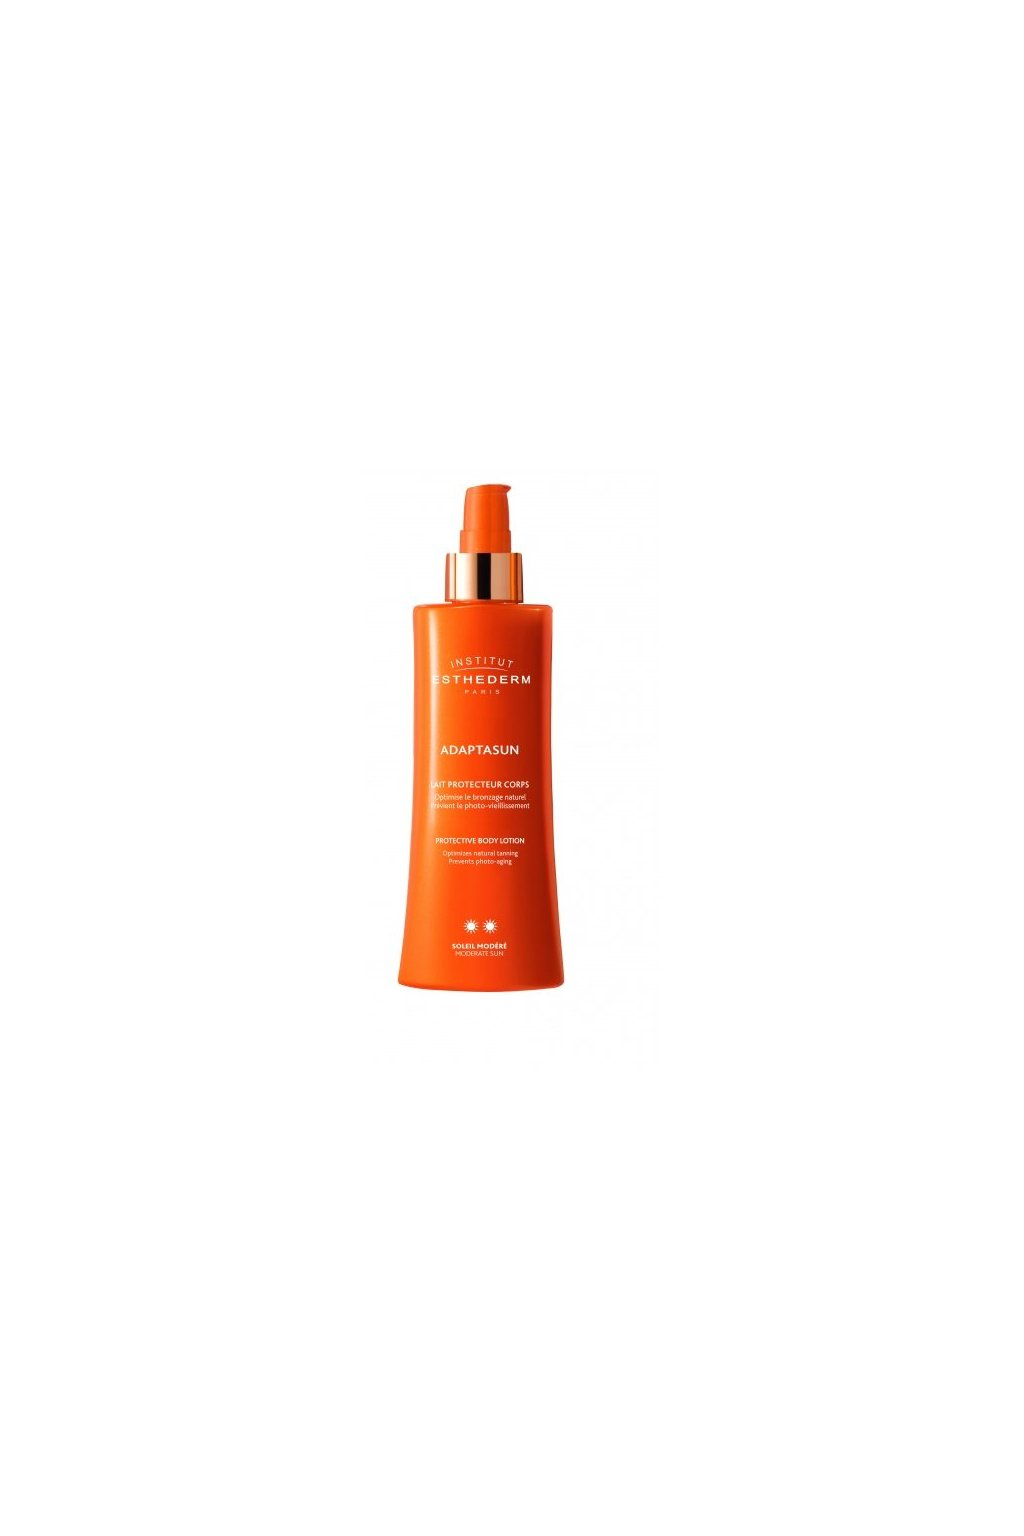 ADAPTASUN BODY LOTION ** NORMAL TO STRONG SUN